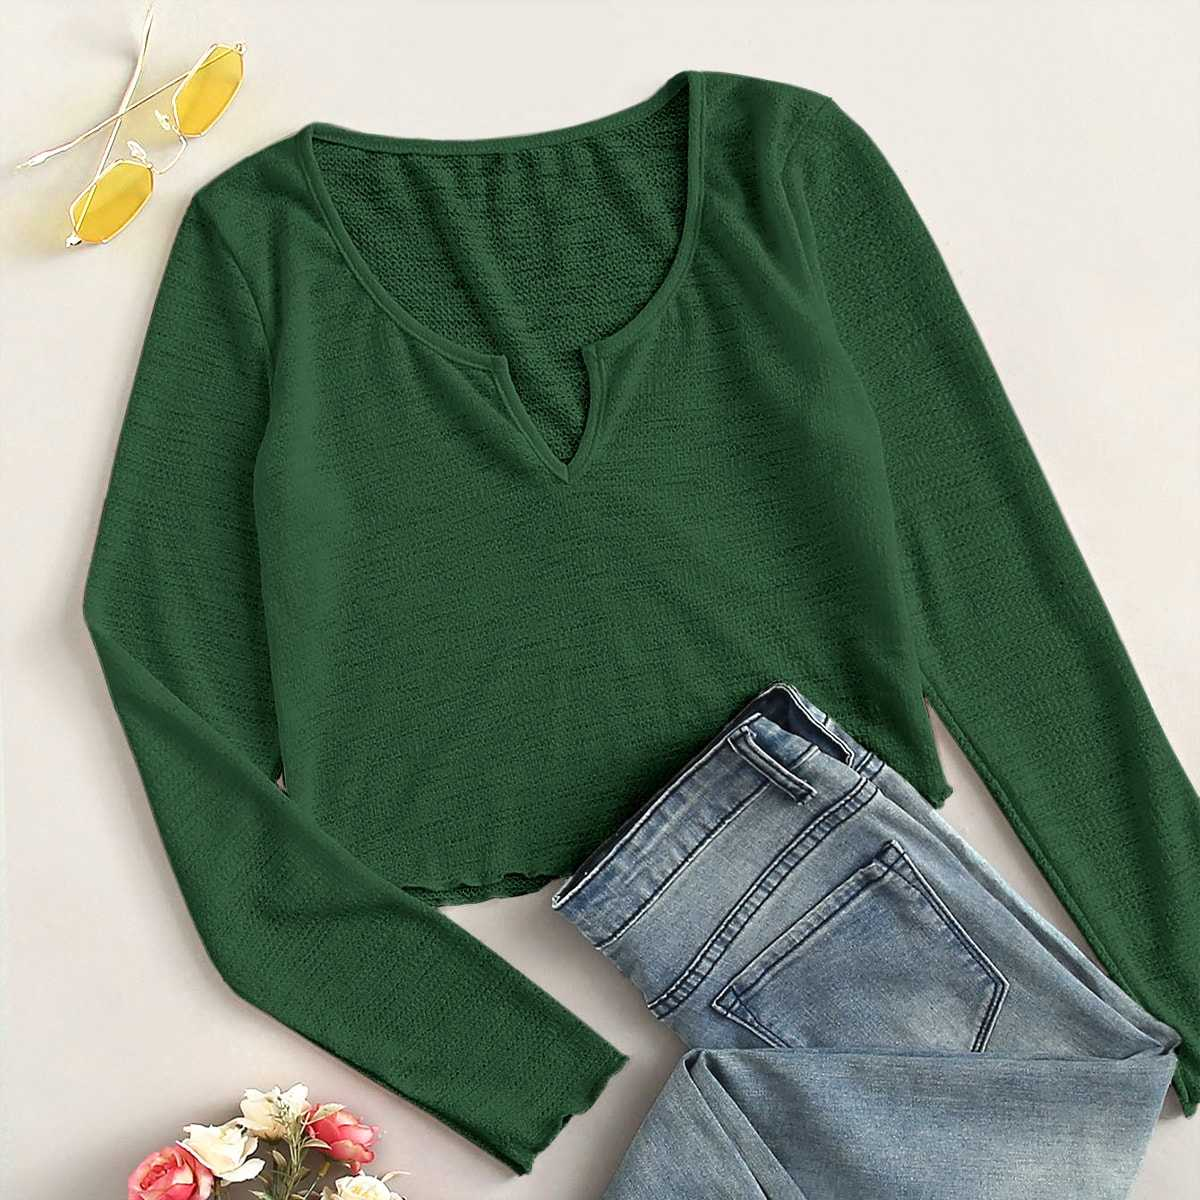 Solid Notch Neck Crop Tee in Green by ROMWE on GOOFASH